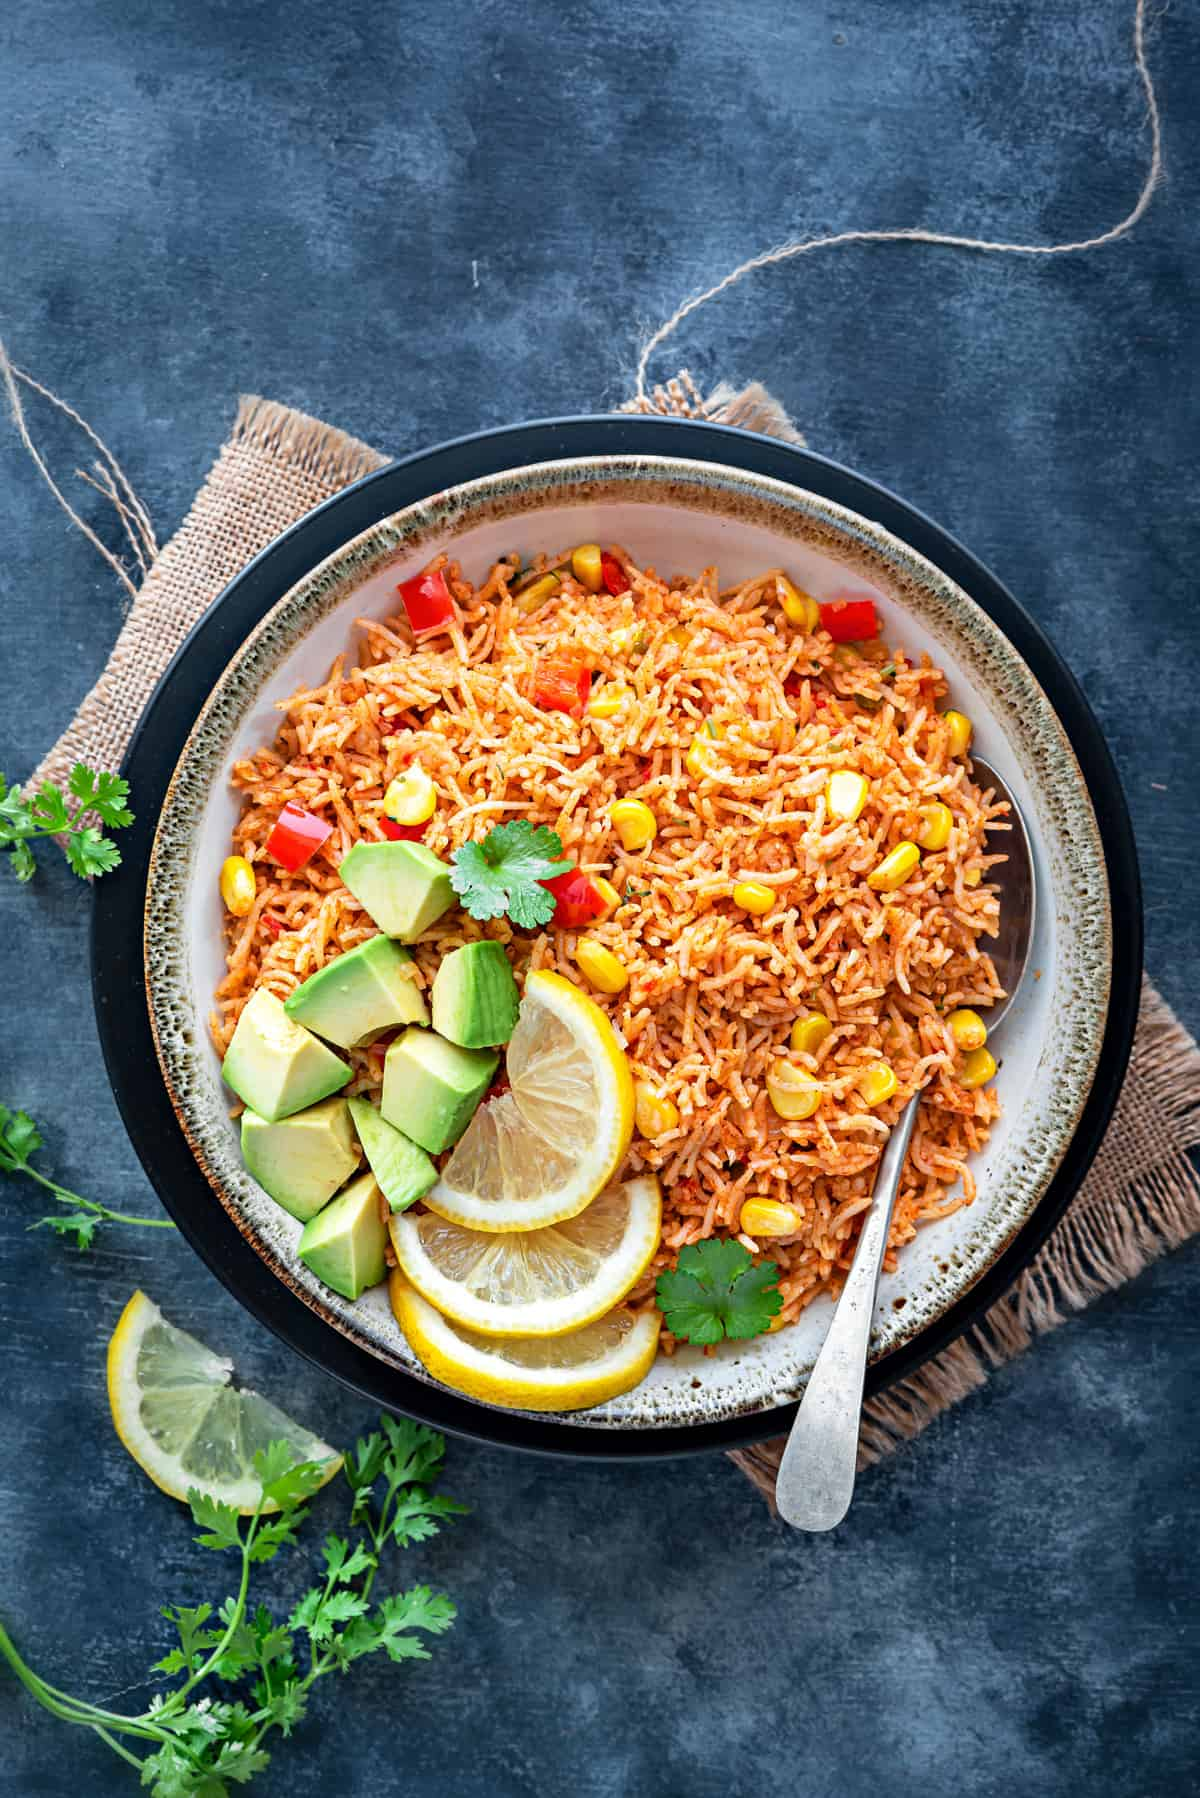 Top shot of garnished Spanish Rice Arroz Rojo in grey bowl with spoon.